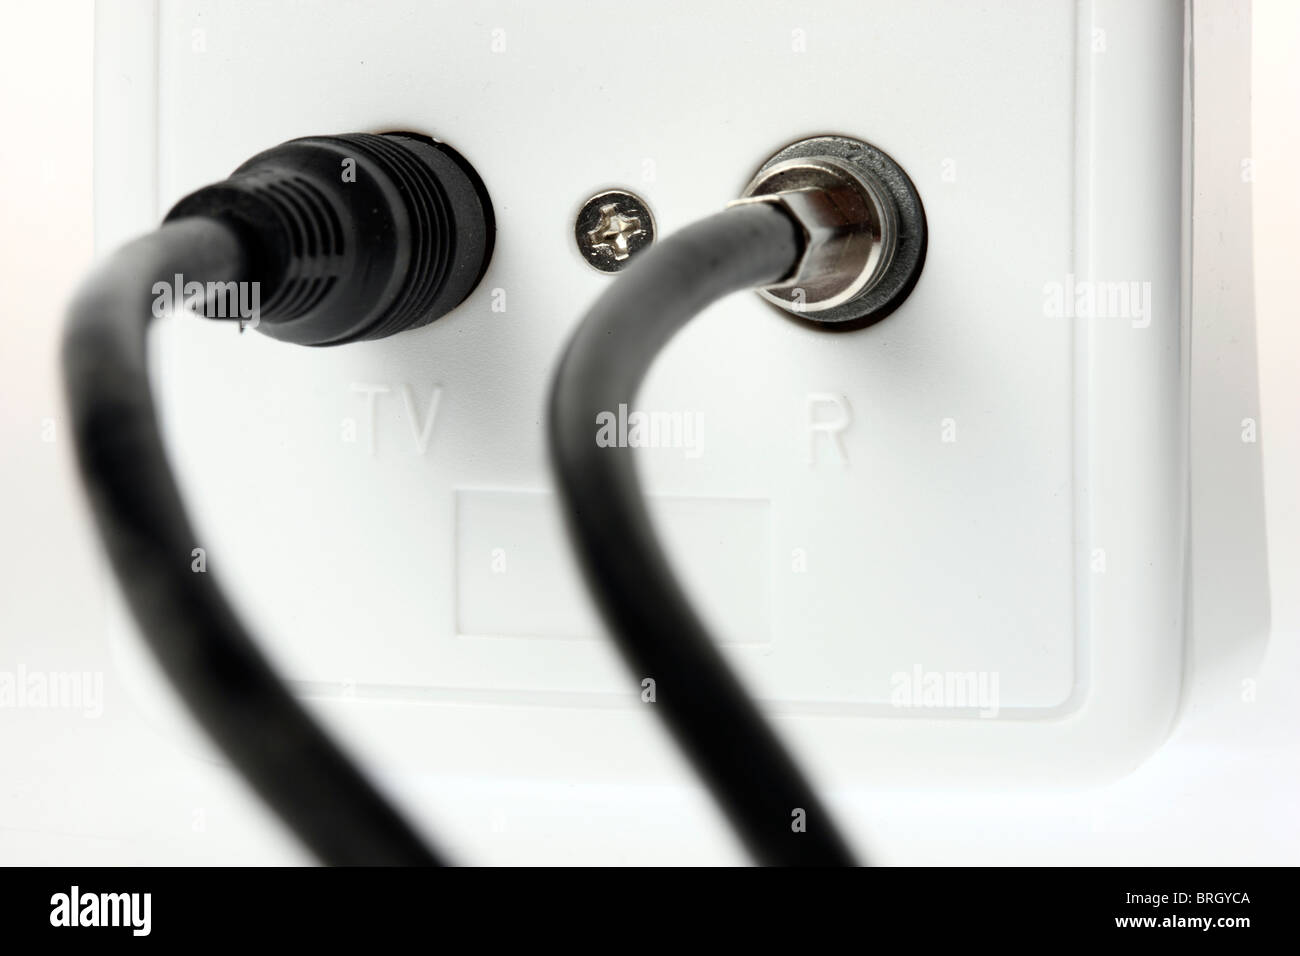 Wall Socket For Television Cable And Radio Cable To Connect With